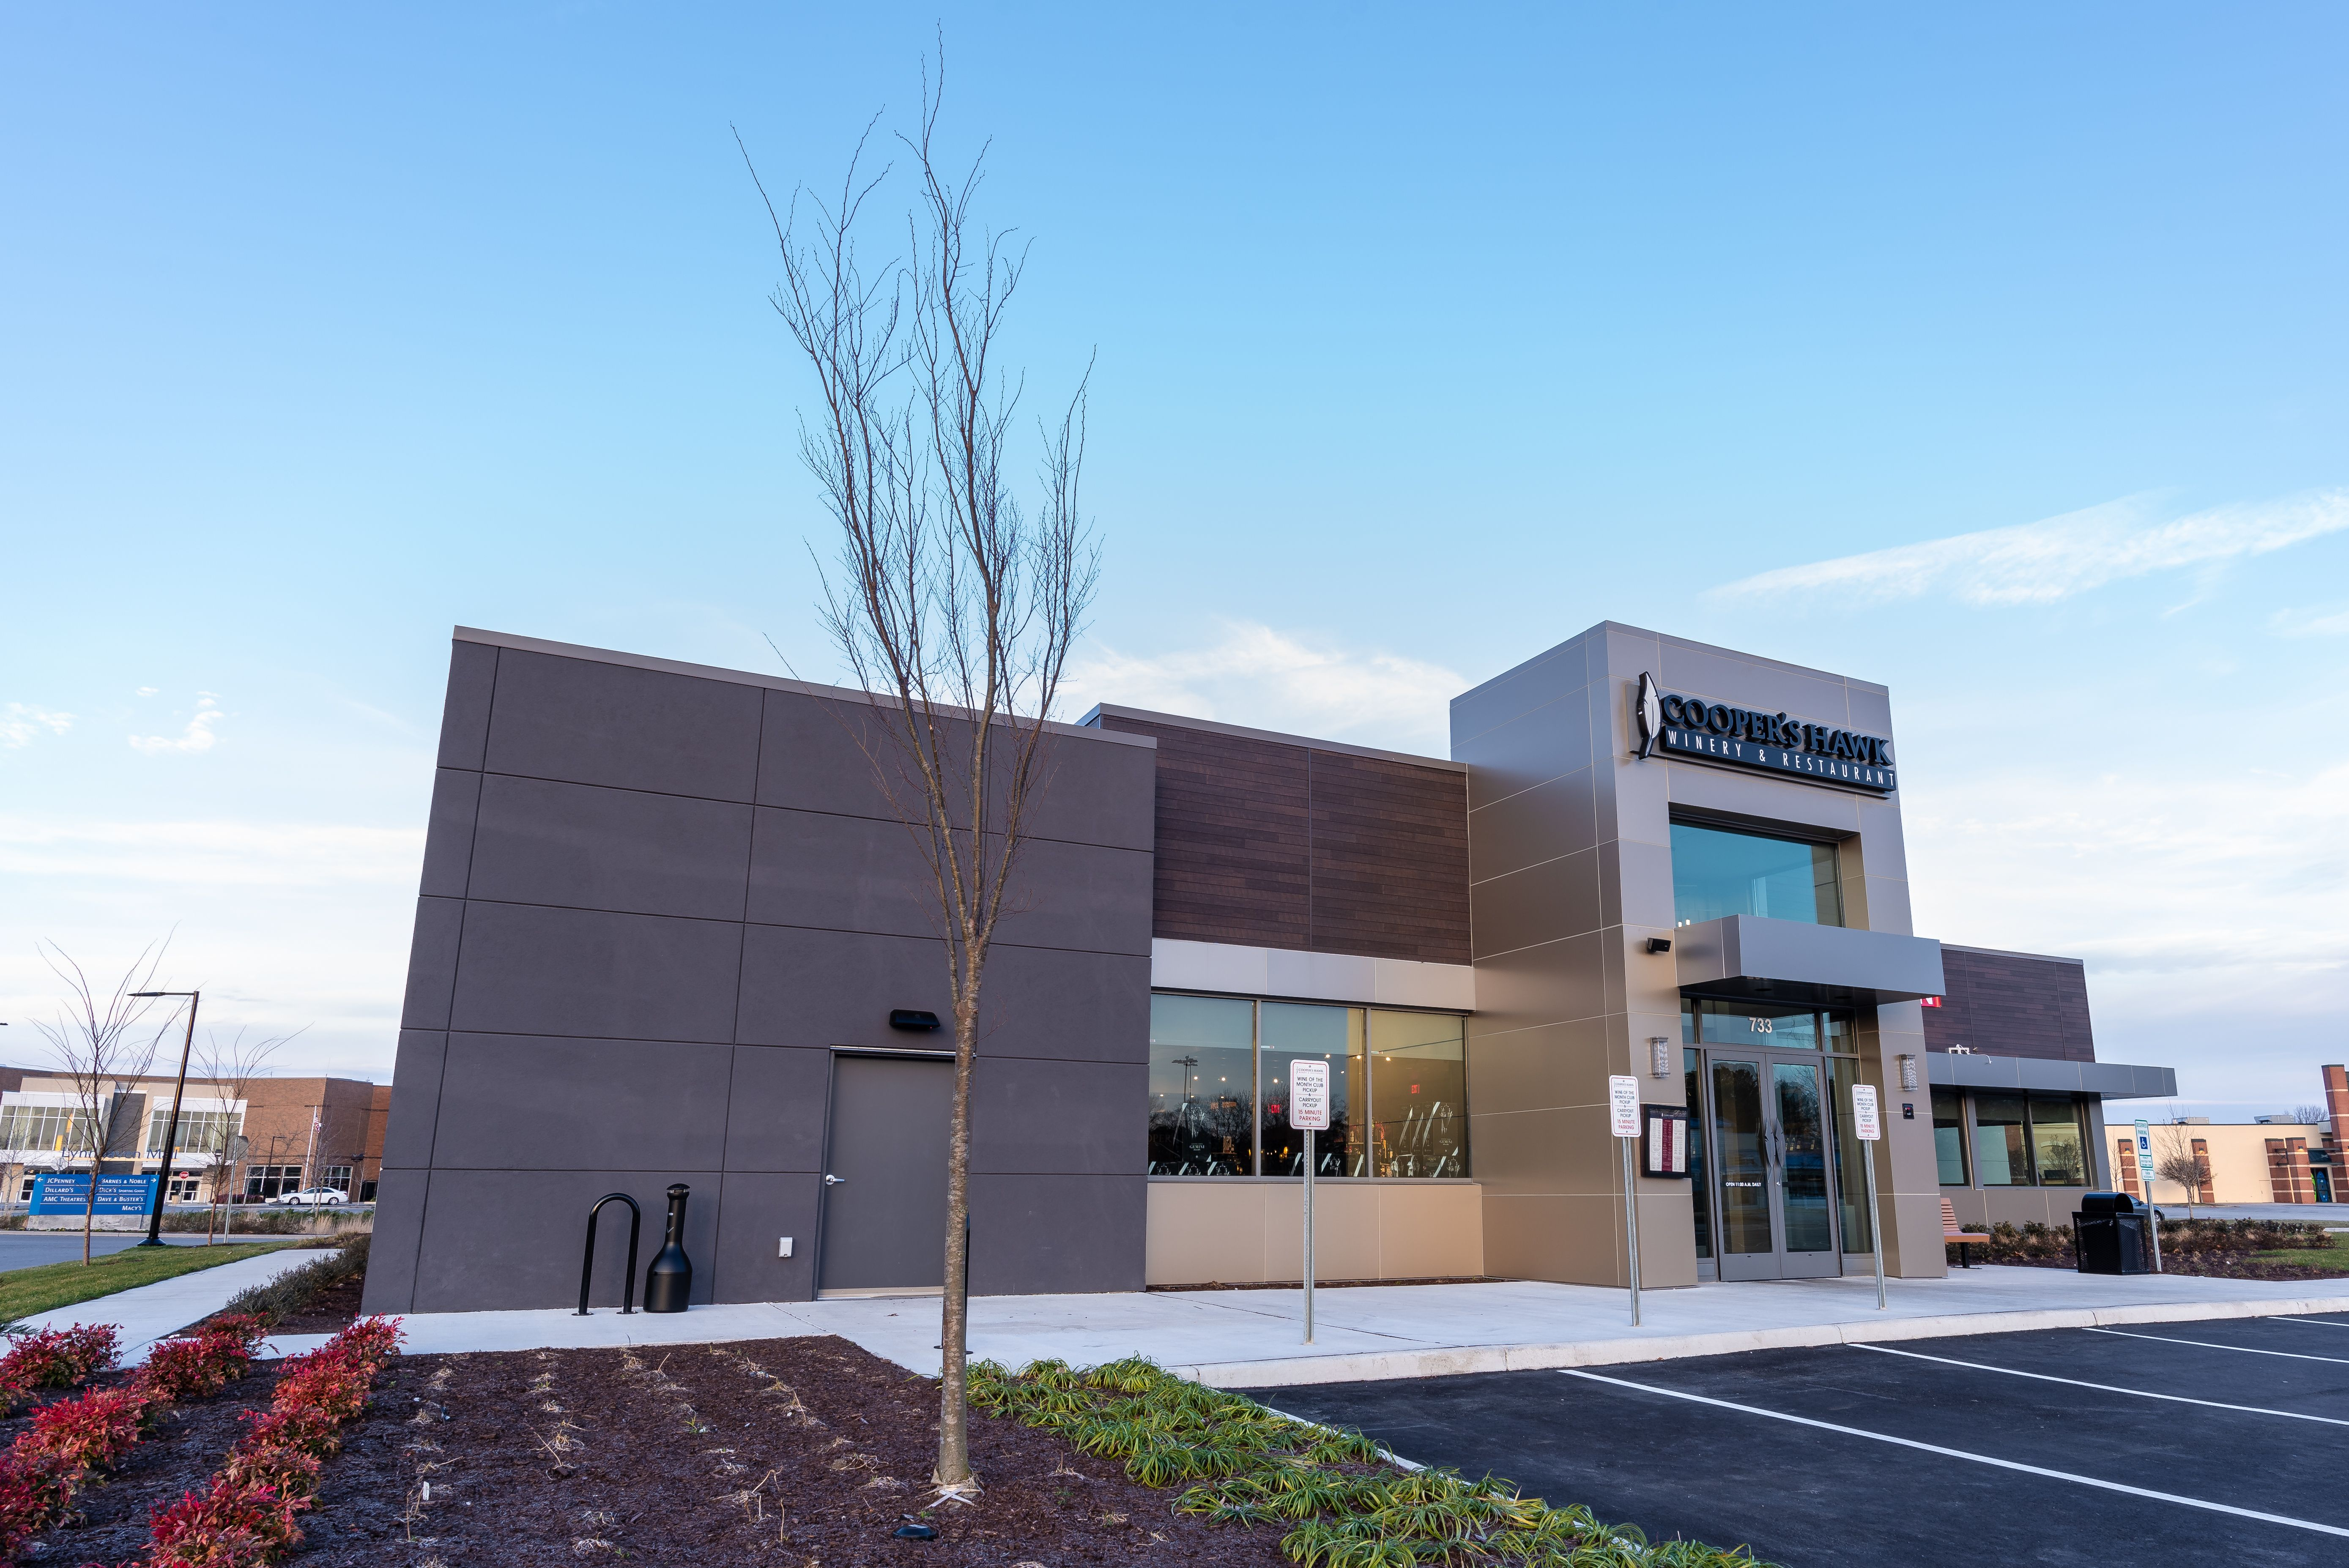 Cooper S Hawk In Virginia Beach Features Alpolic Mcm On The Exterior And Canopies Our Beautiful Colors Complement The Restauran Virginia Beach Beach Virginia